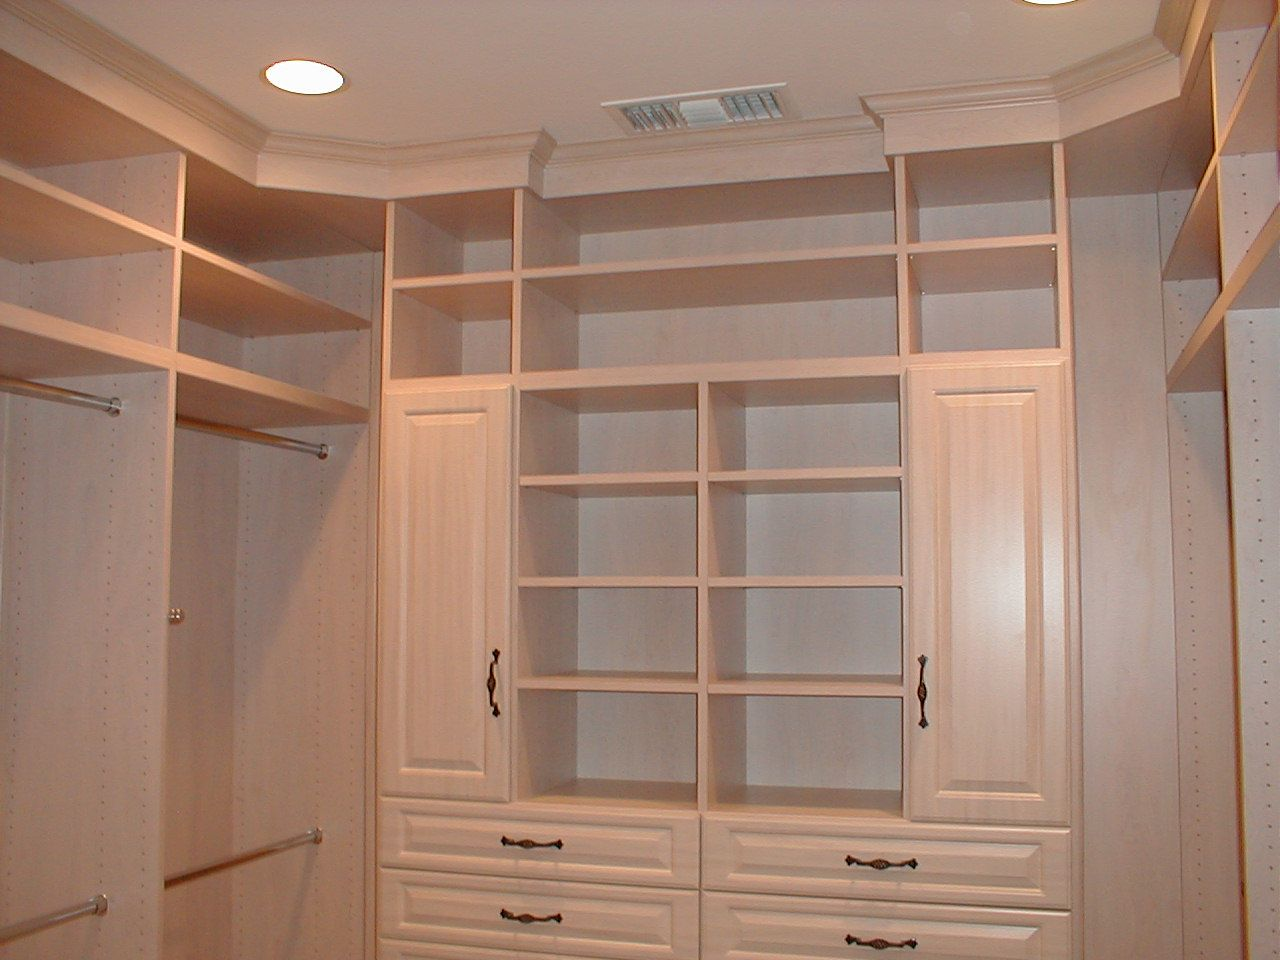 Master Closet Designs custom closet design | closet designs, custom closet design and